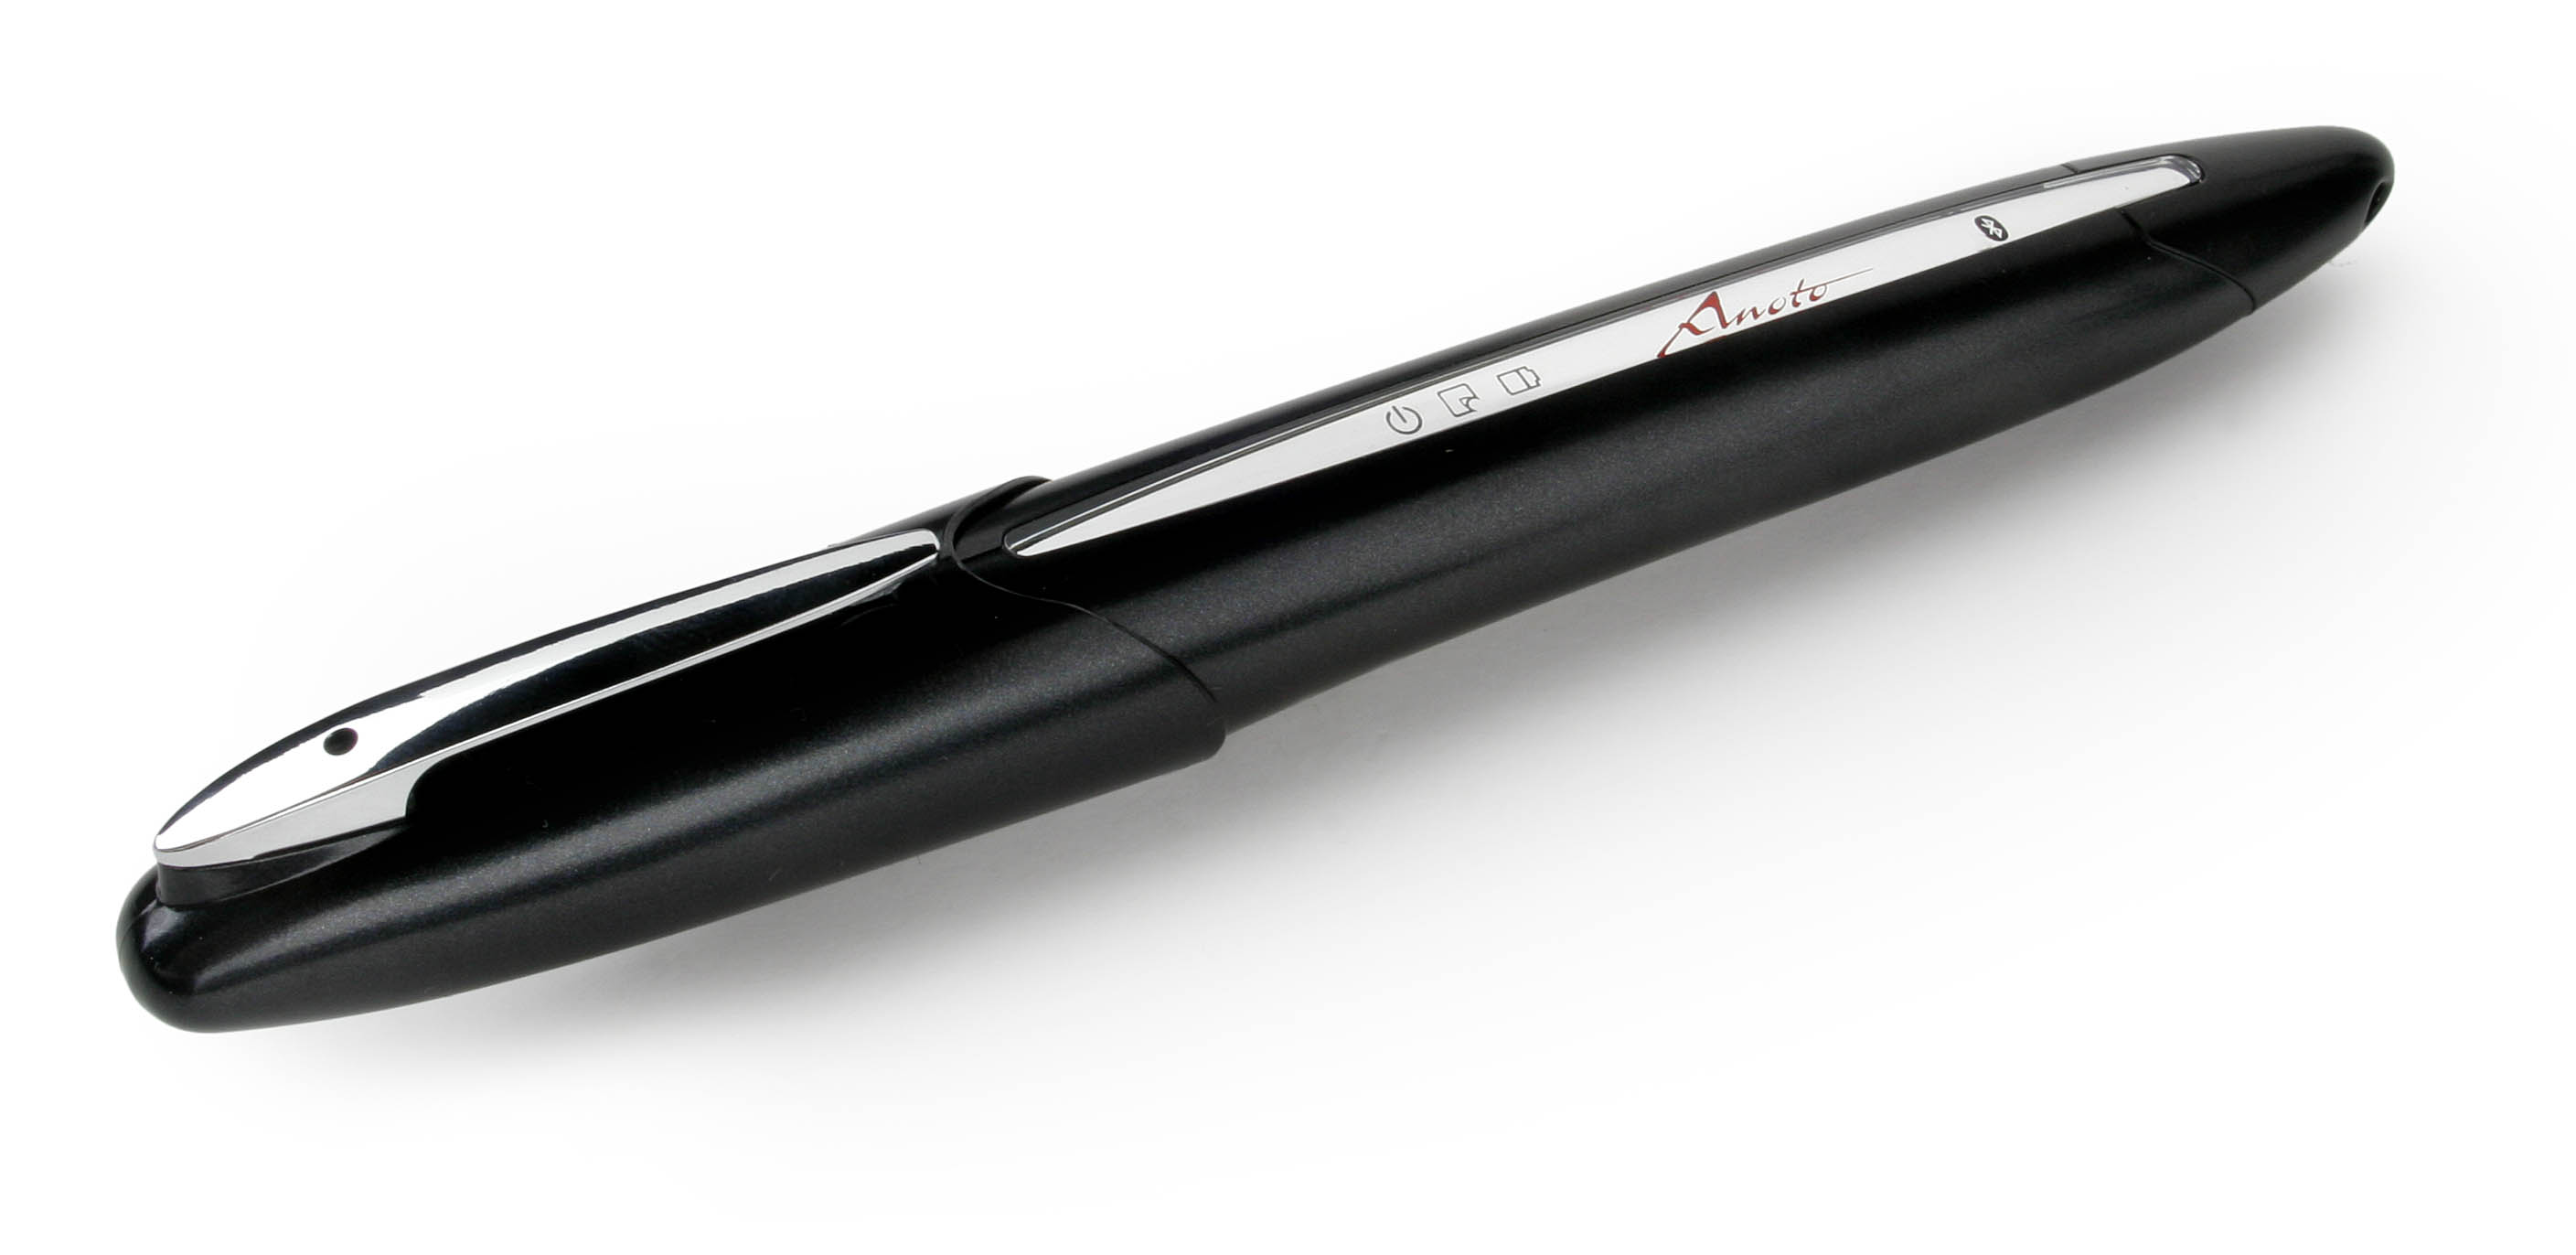 DP-201 Digital Pen